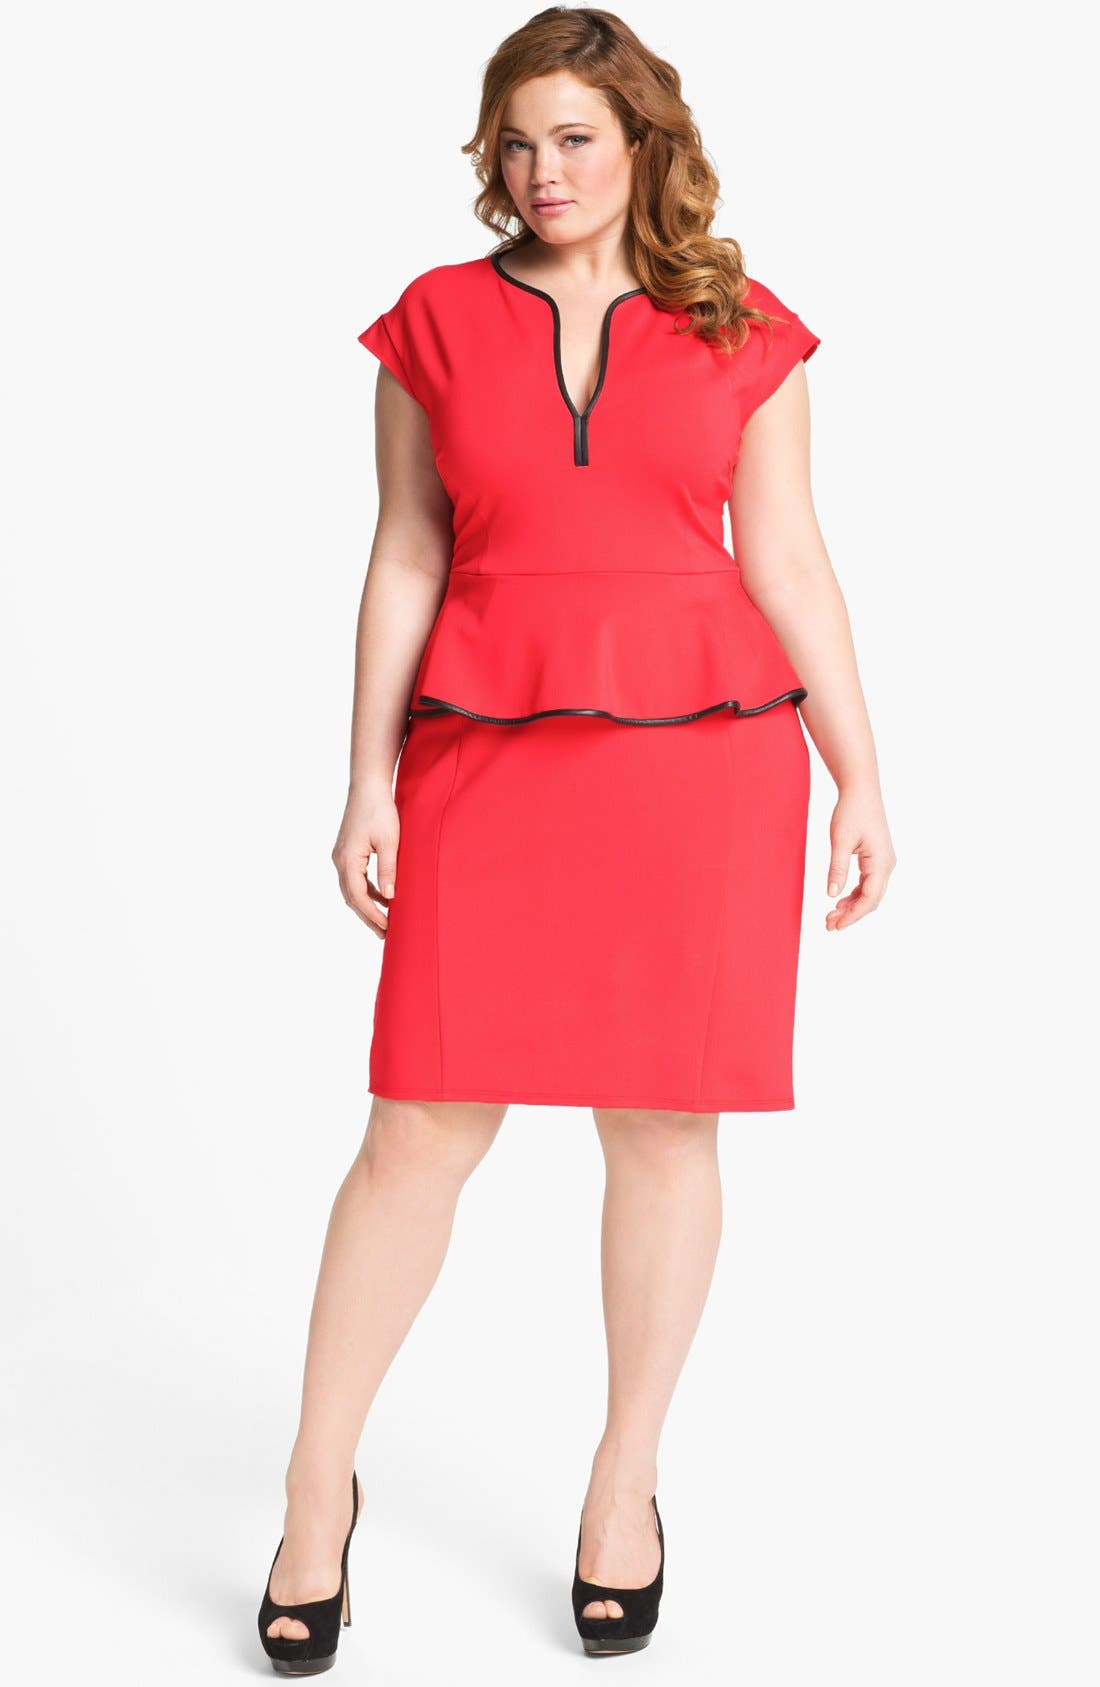 Main Image - ABS by Allen Schwartz Leather Trim Peplum Dress (Plus Size)